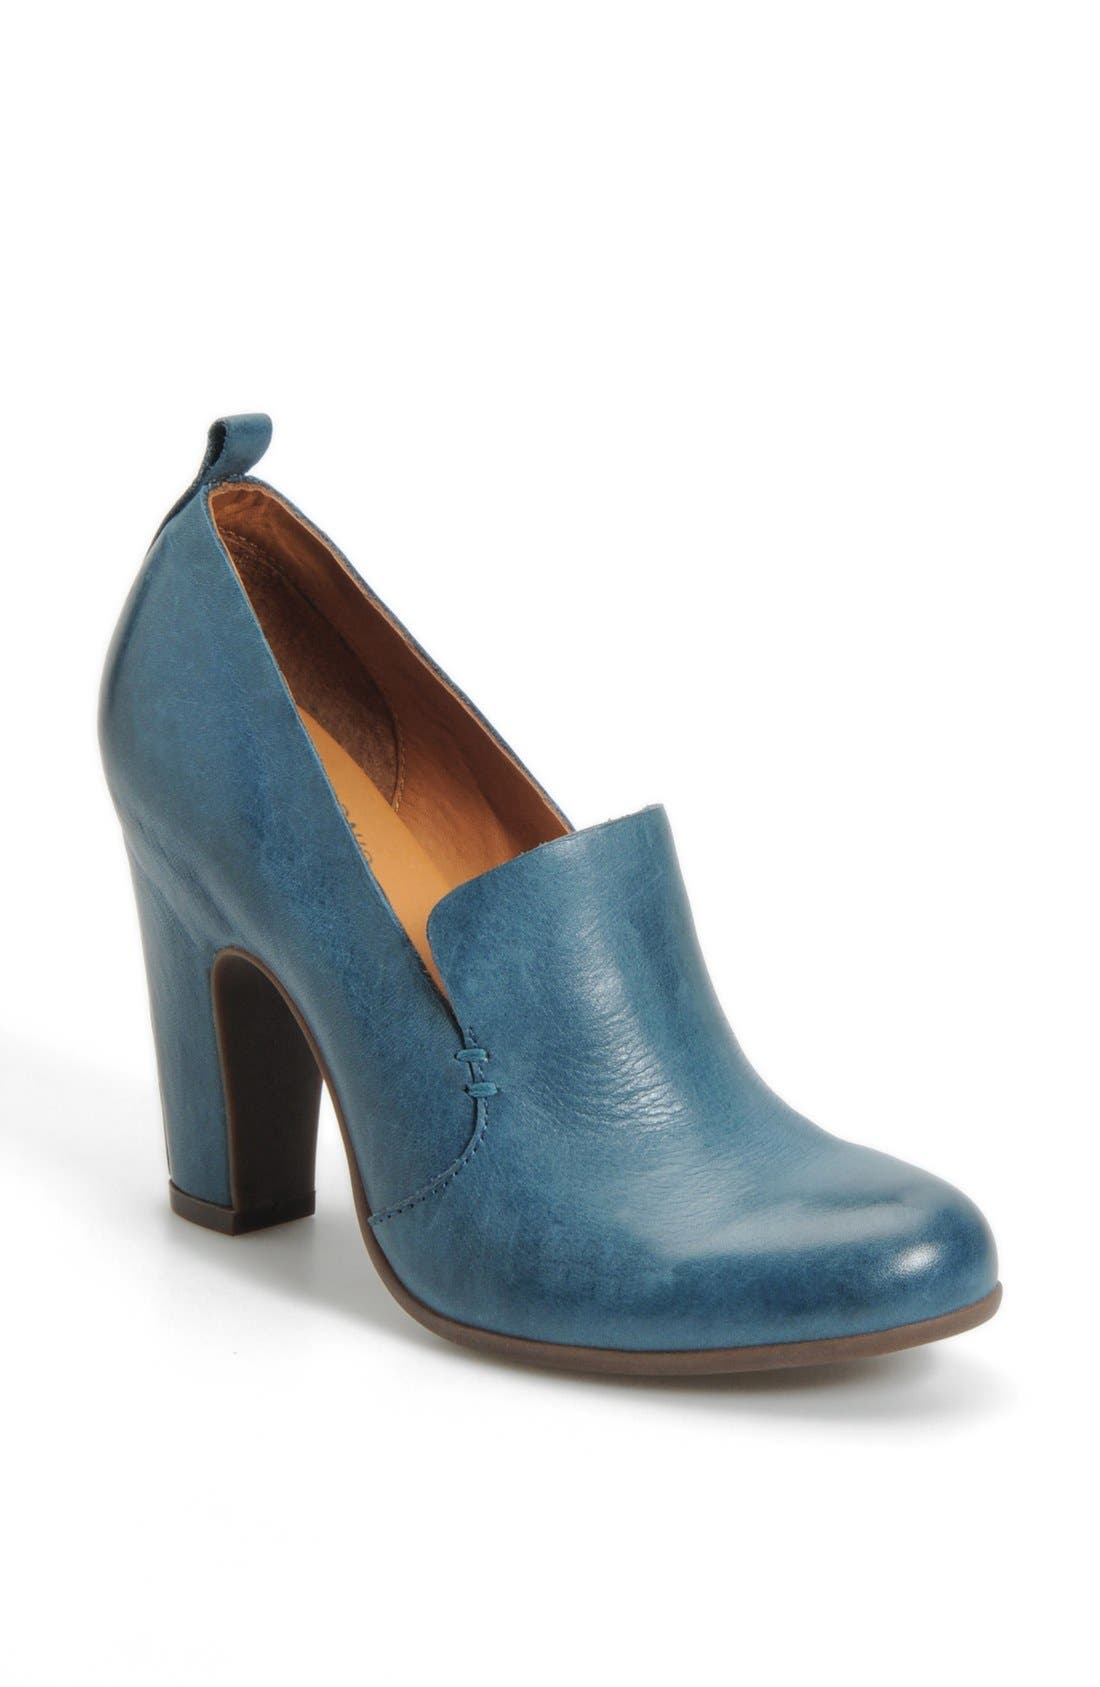 Alternate Image 1 Selected - Kork-Ease 'Harper' Pump